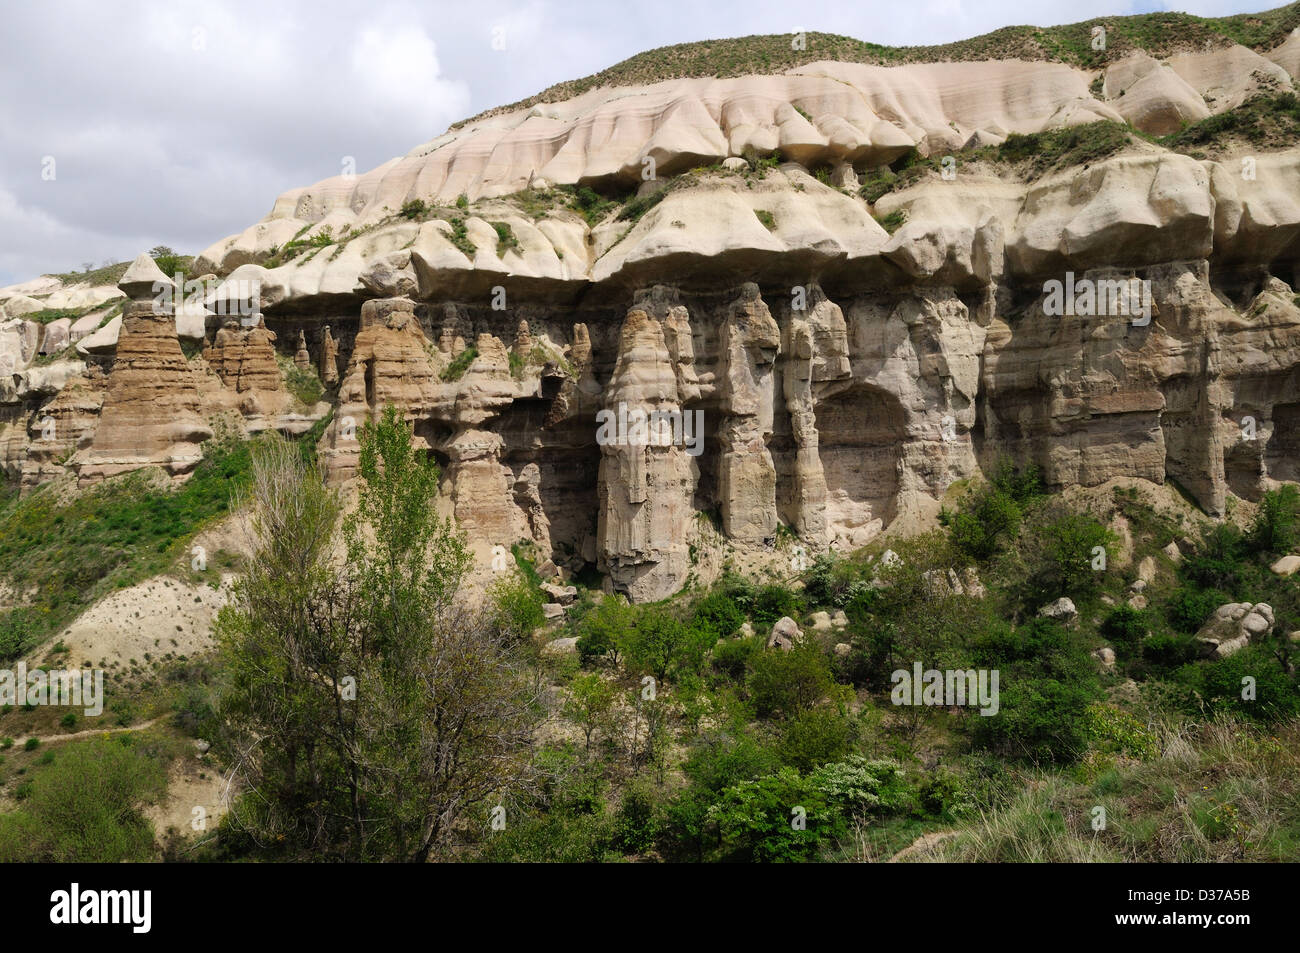 Rock formations folds and tuff hills Pigeon Valley between Uchisar and Goreme Cappadocia Turkey - Stock Image